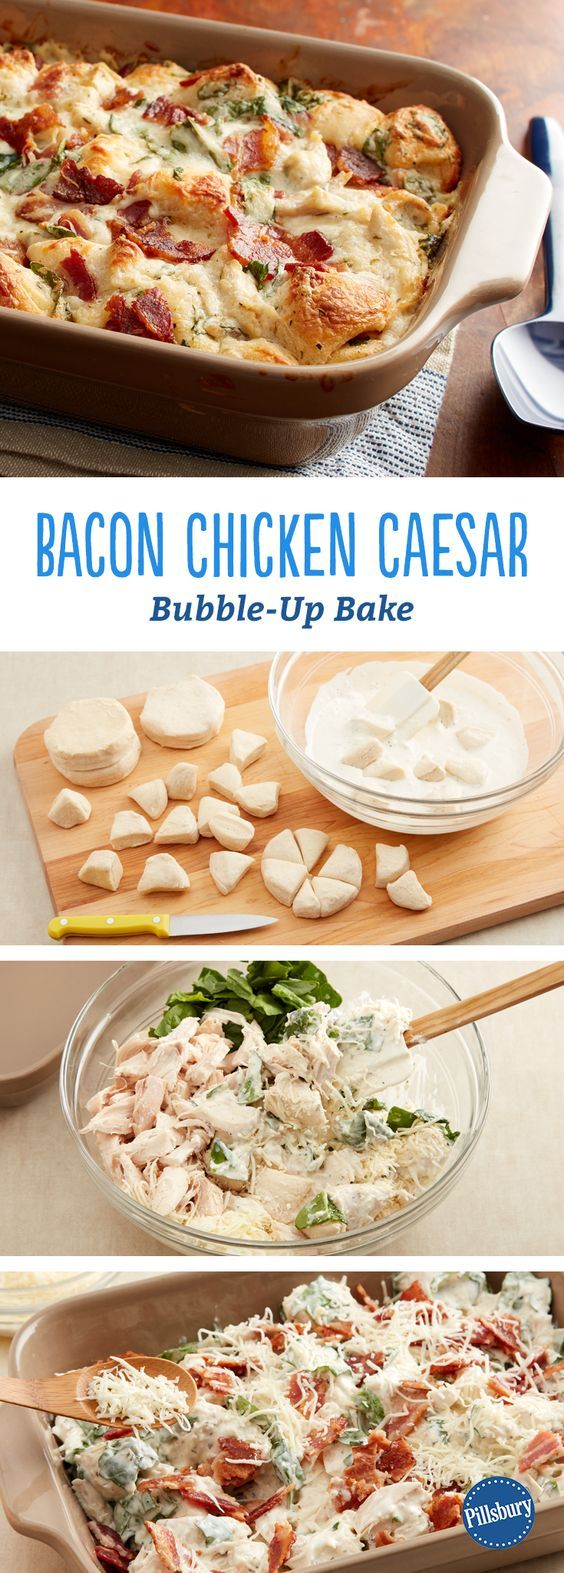 Chicken Bacon Caesar Bubble-Up Bake: This quick-prep weeknight dinner is literally bubbling up with flavor! For an easy and impressive meal, combine Caesar dressing, bacon and fresh spinach in a warm biscuit bake.